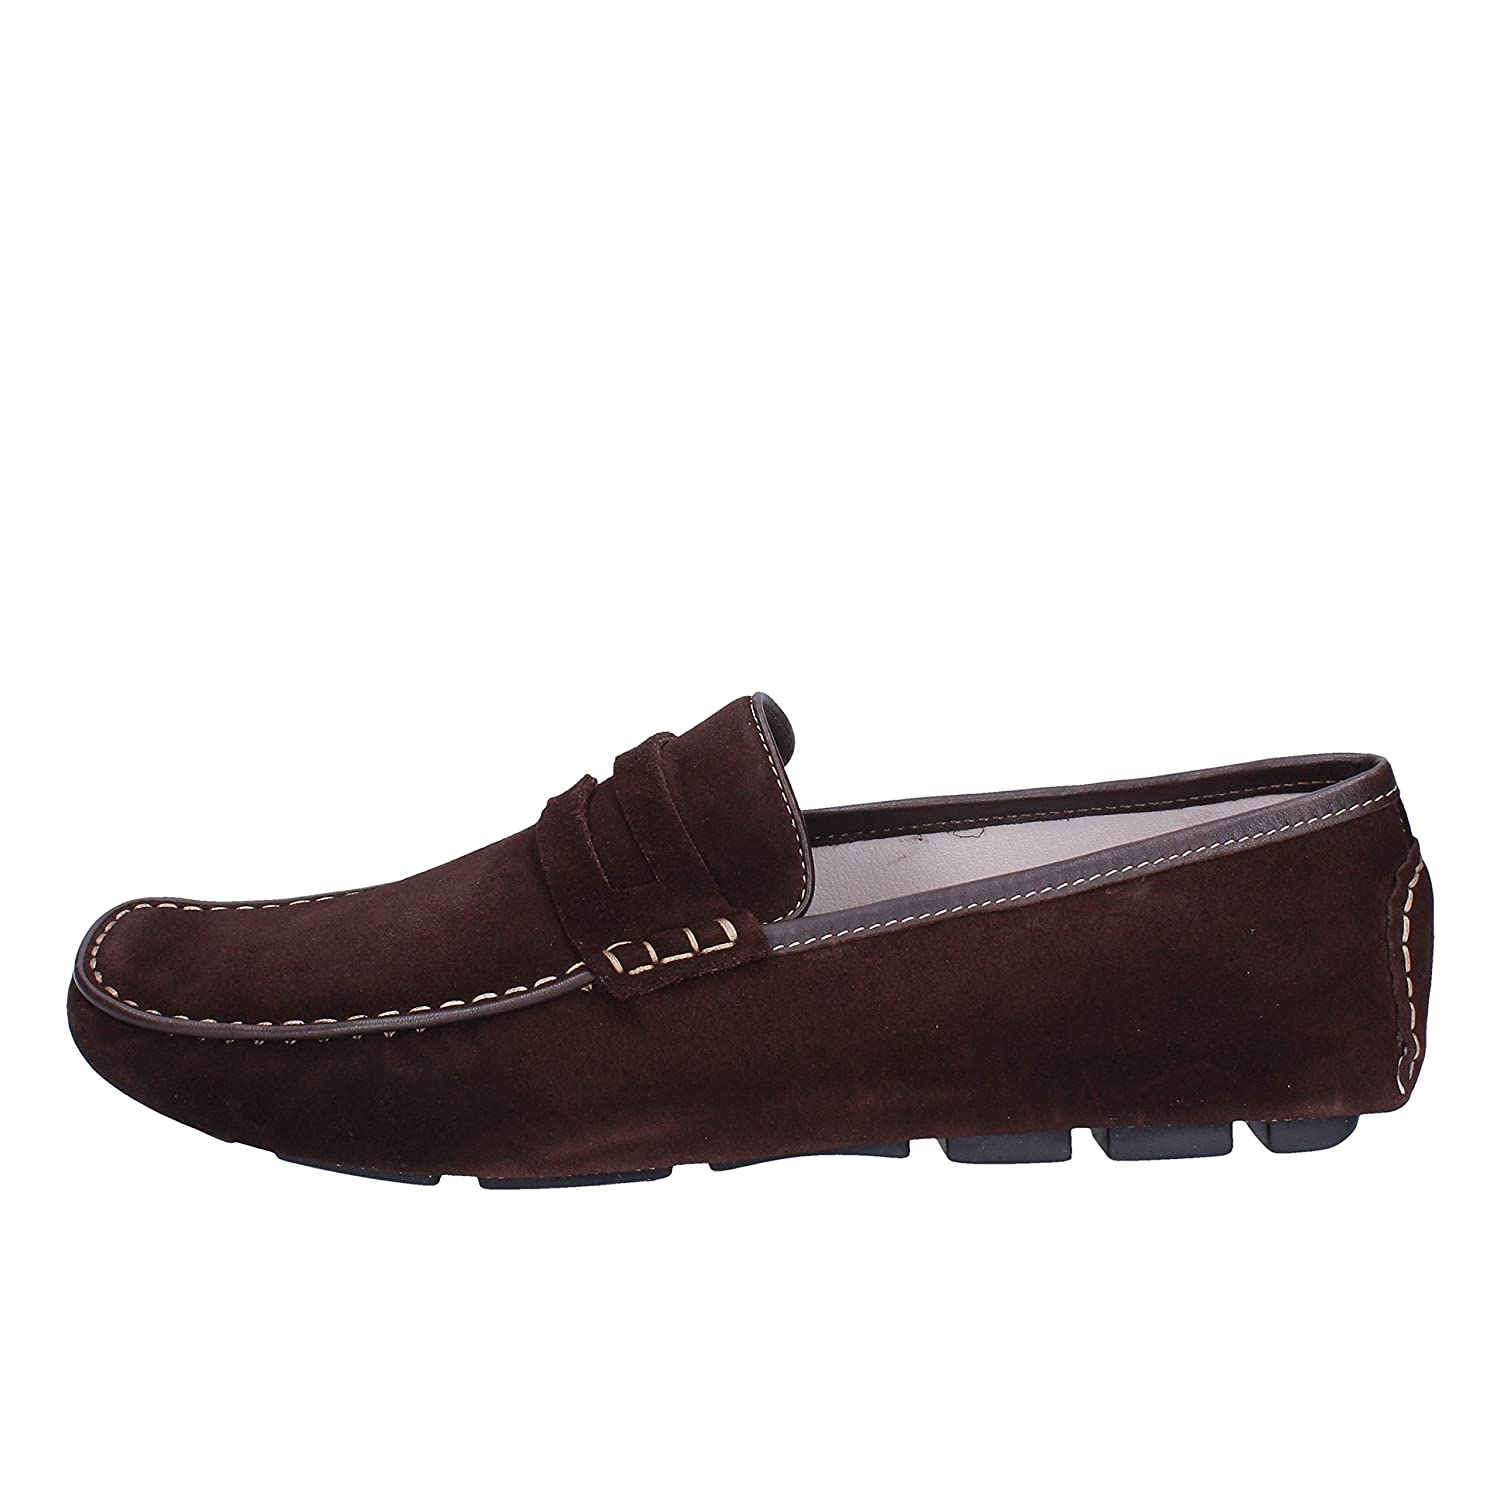 ROSSINI Loafers-Shoes Mens Suede Brown